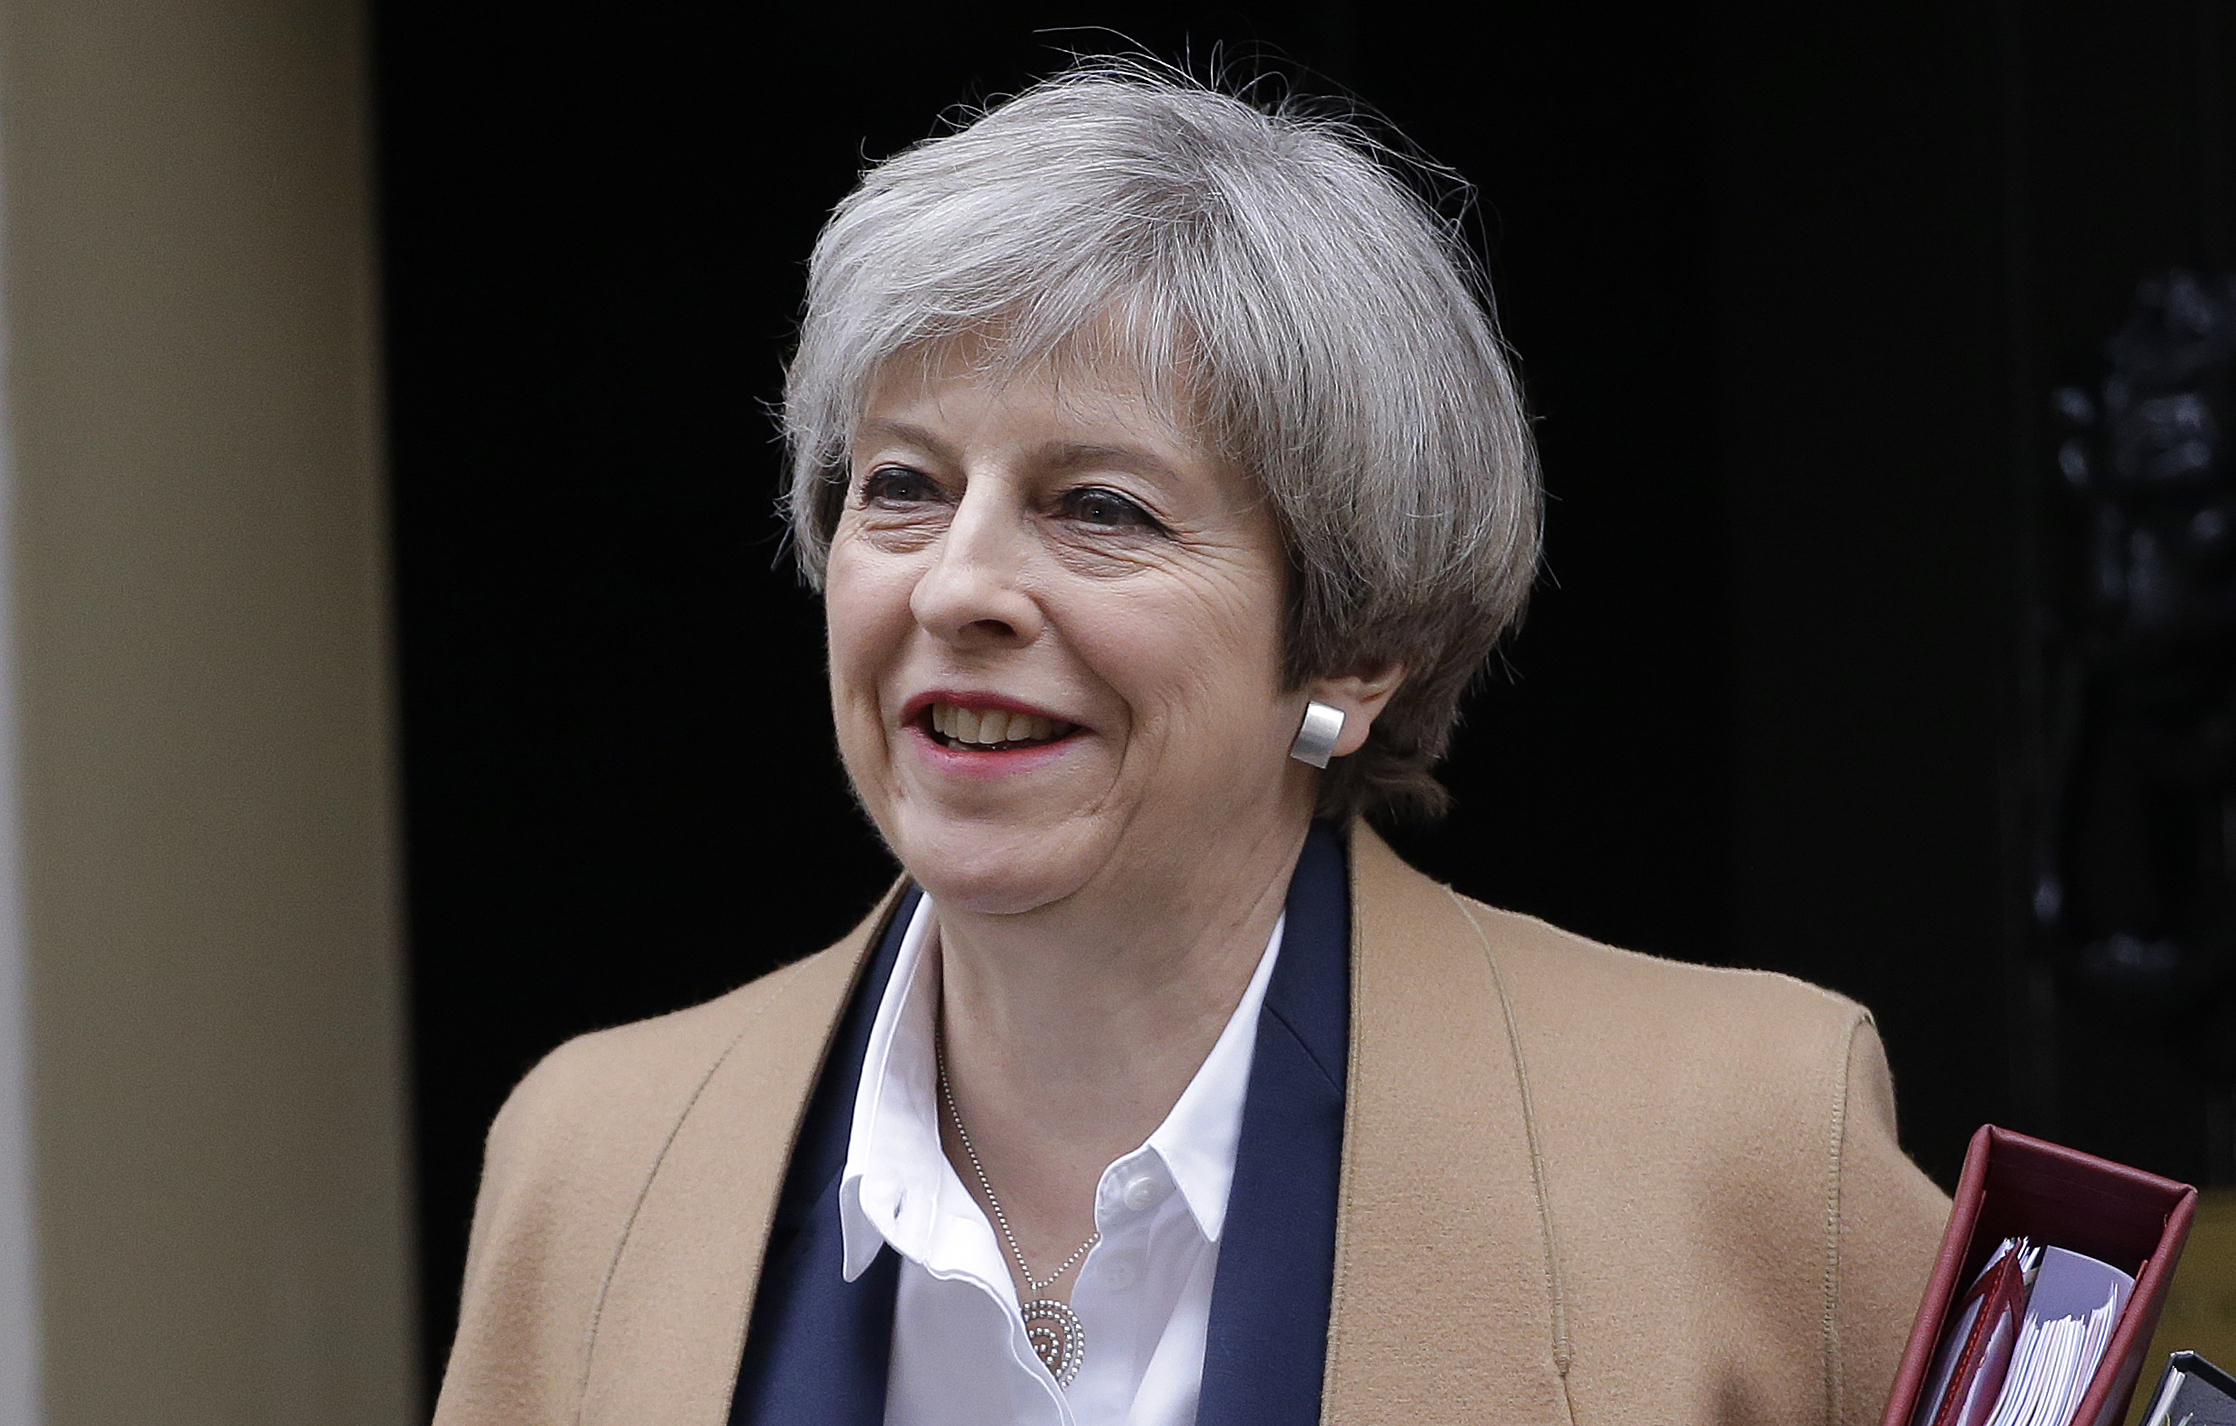 Britain's Prime Minister Theresa May leaves 10 Downing Street on her way to parliament, London, Wednesday March 29, 2017. May will speak to parliament to announce that Britain is set to formally file for divorce from the European Union Wednesday, ending a 44-year relationship, enacting the decision made by U.K. voters in a referendum nine months ago and launching both Britain and the bloc into uncharted territory. (AP Photo/ Alastair Grant)